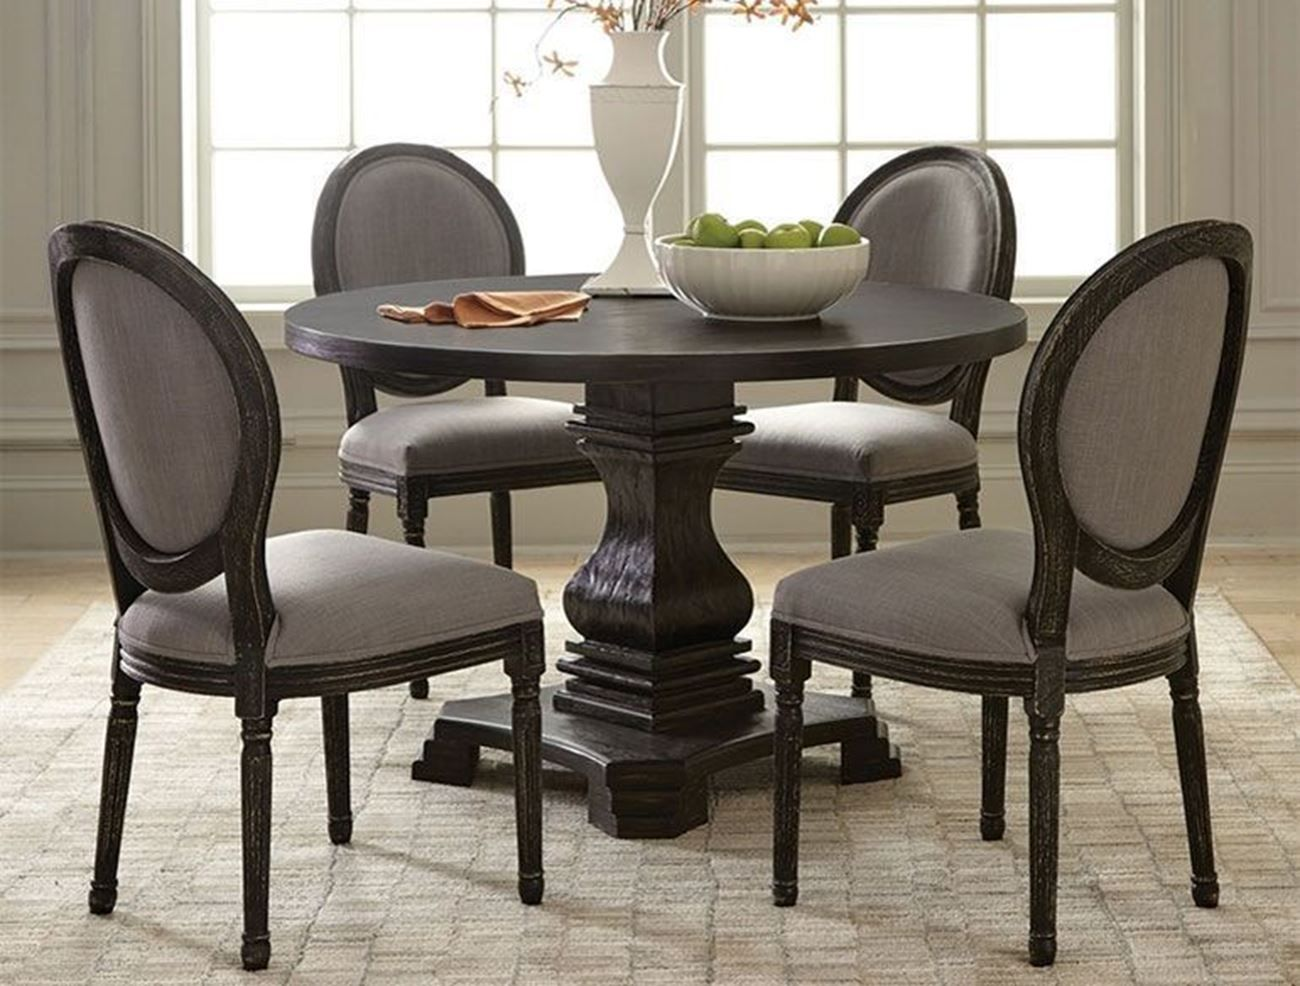 27 How To Use Upholstered Chairs For Dining Room Decoration To